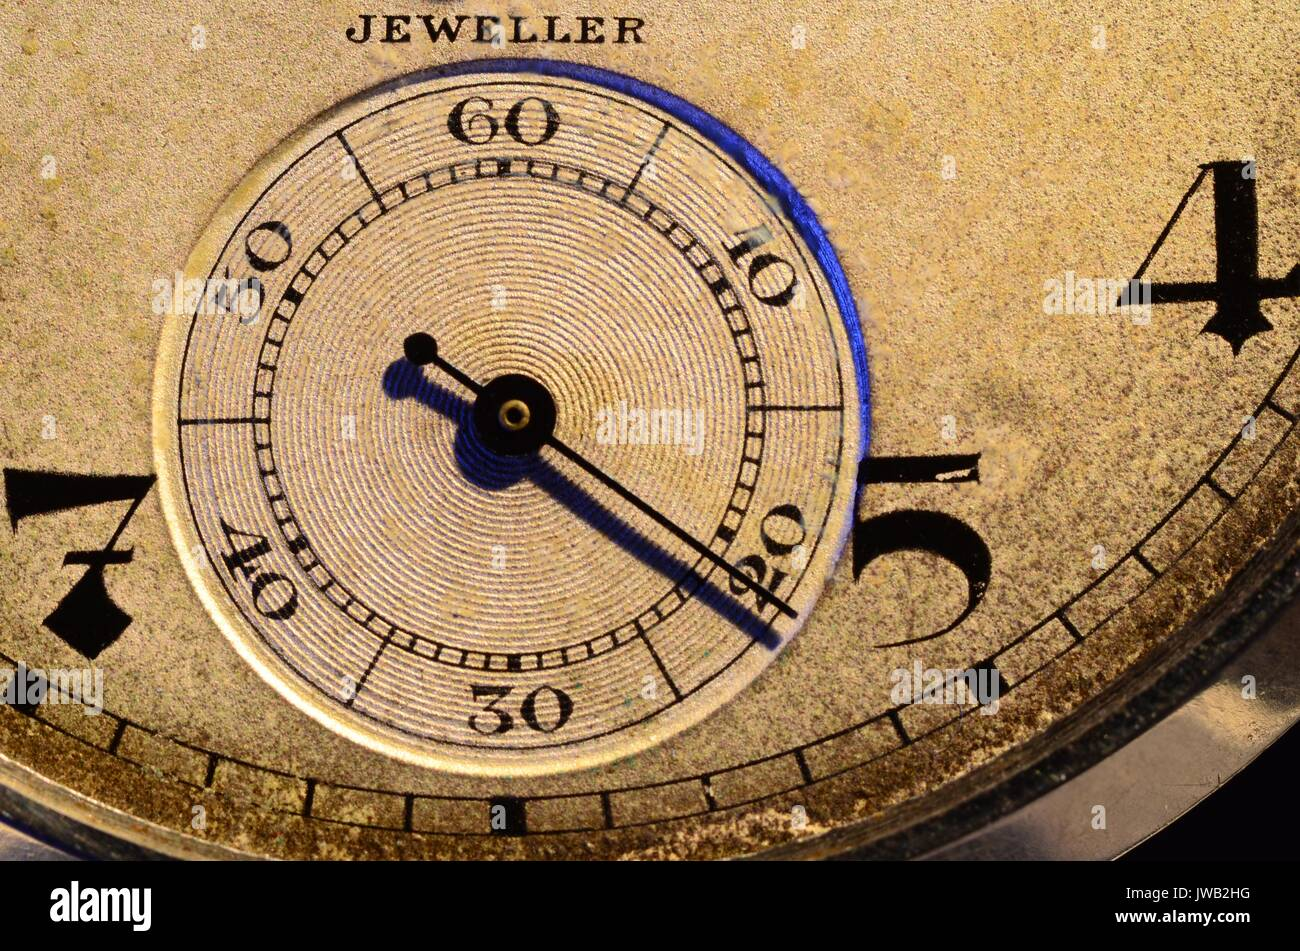 Time - second hand. Close up of second hand of old analogue pocket watch. Face is patterned brownish. Second hand , markings and figures are black. - Stock Image